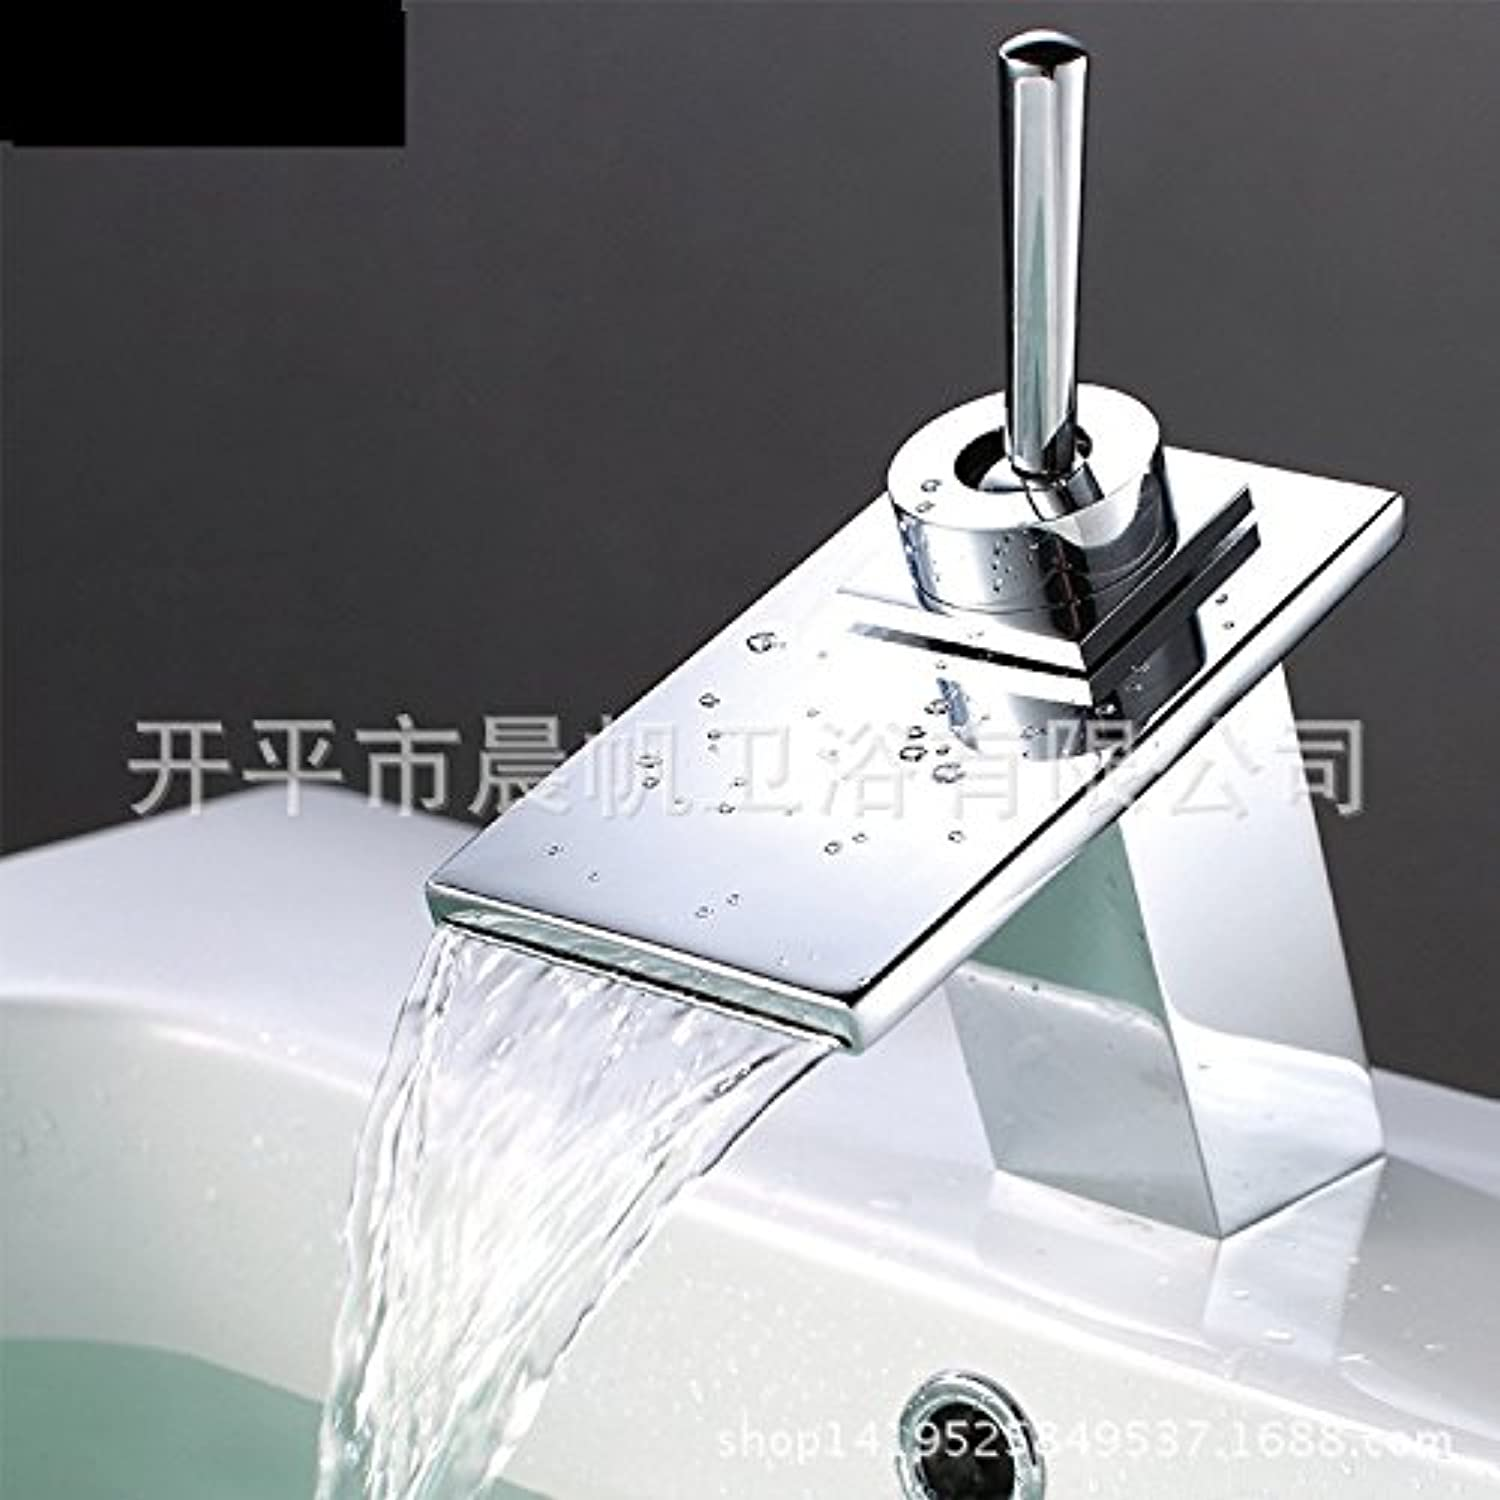 LHbox Basin Mixer Tap Bathroom Sink Faucet Square falls full copper hot and cold lowered vanity area with sink water faucet